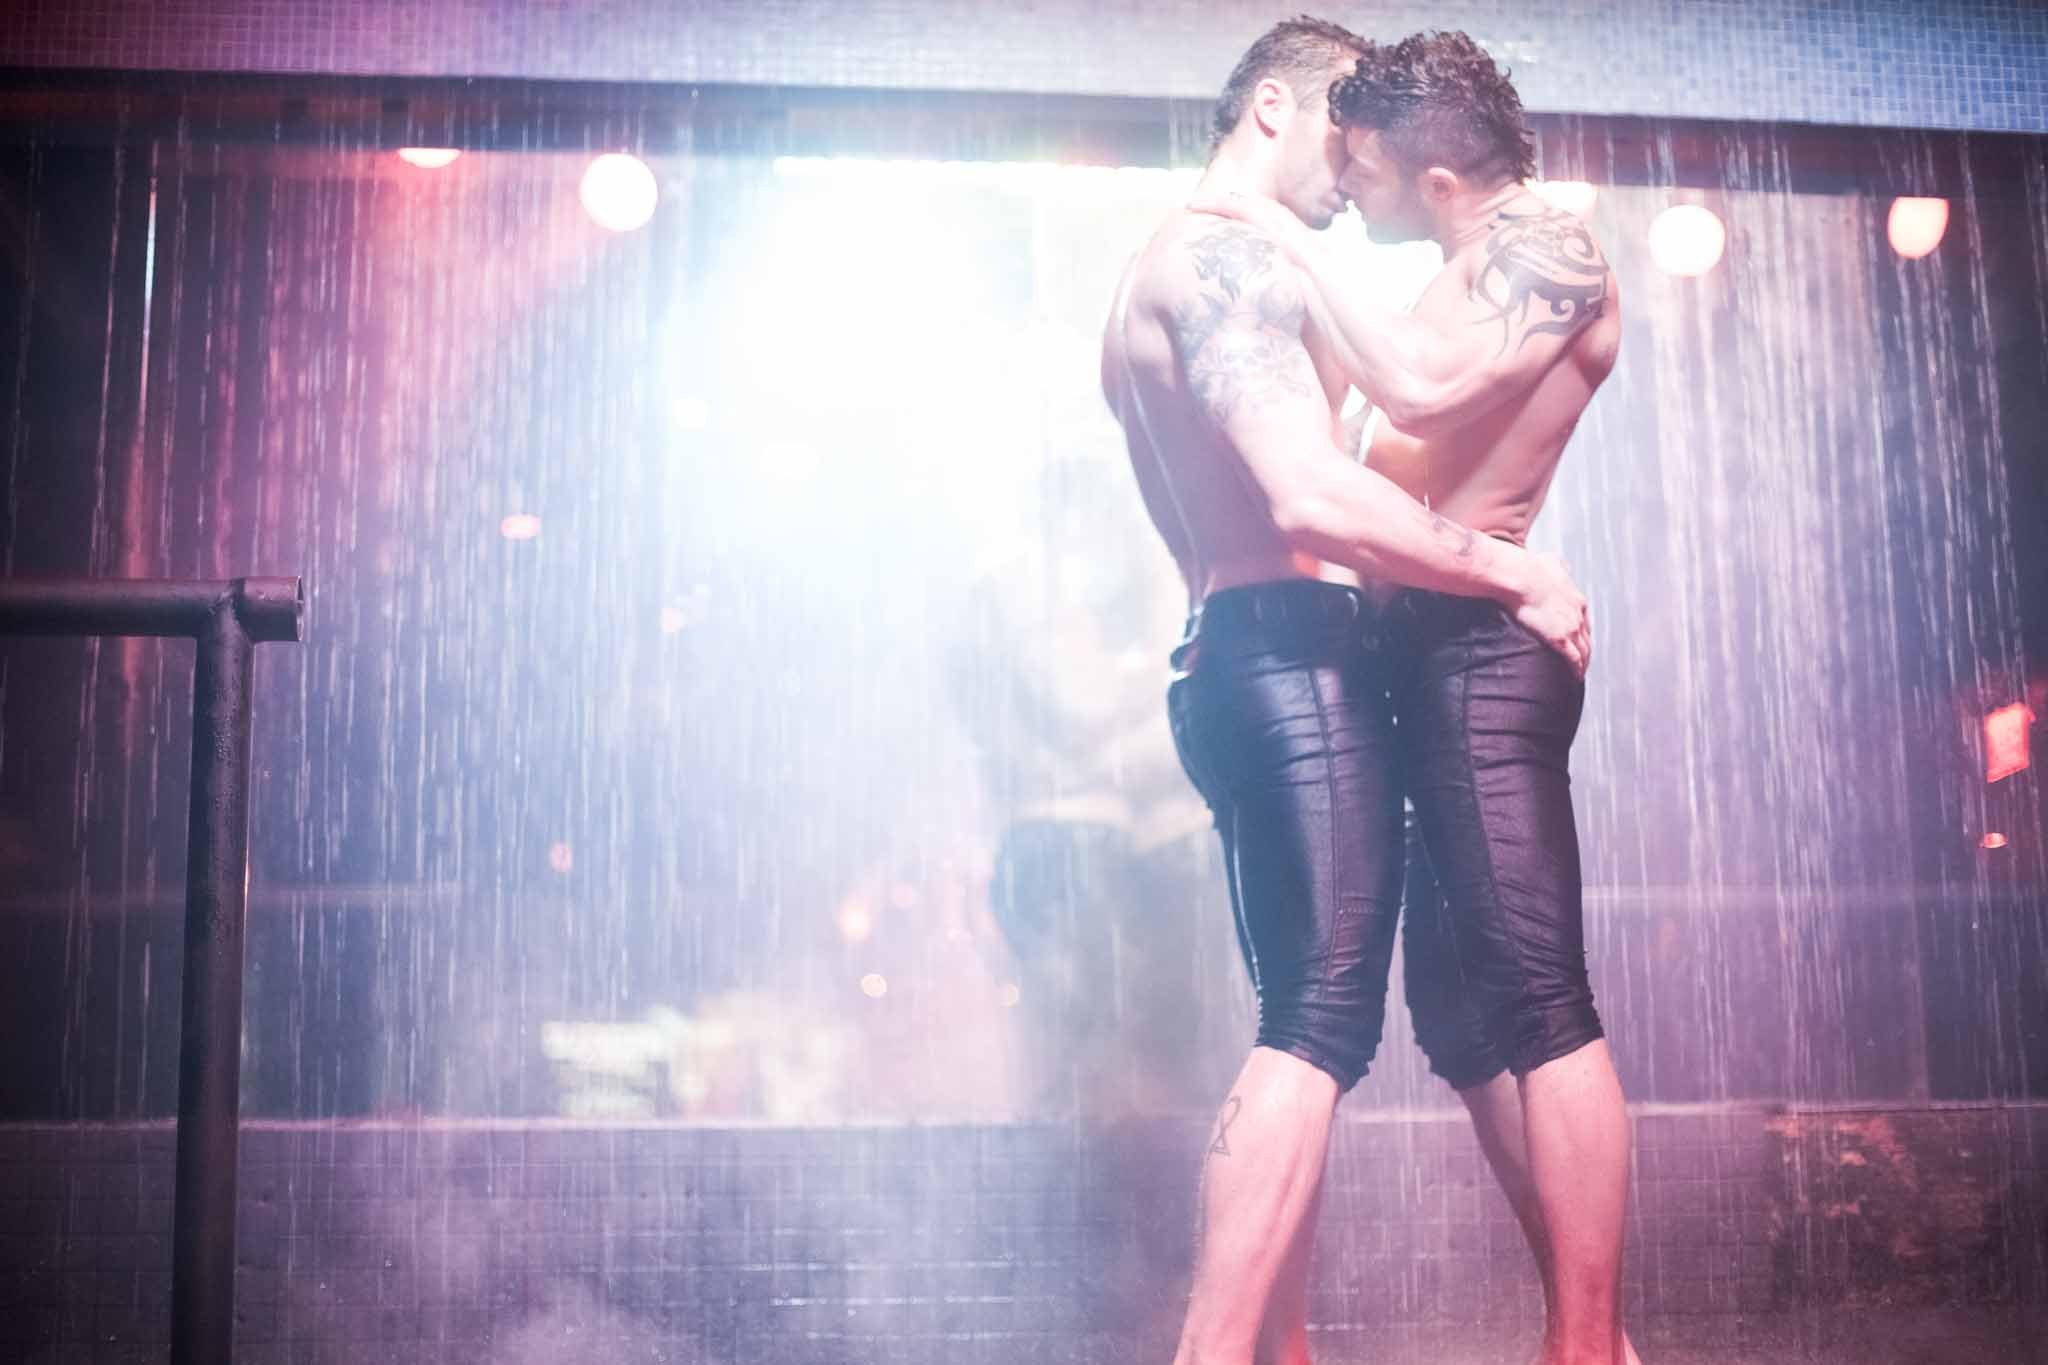 Gay New York photo galleries